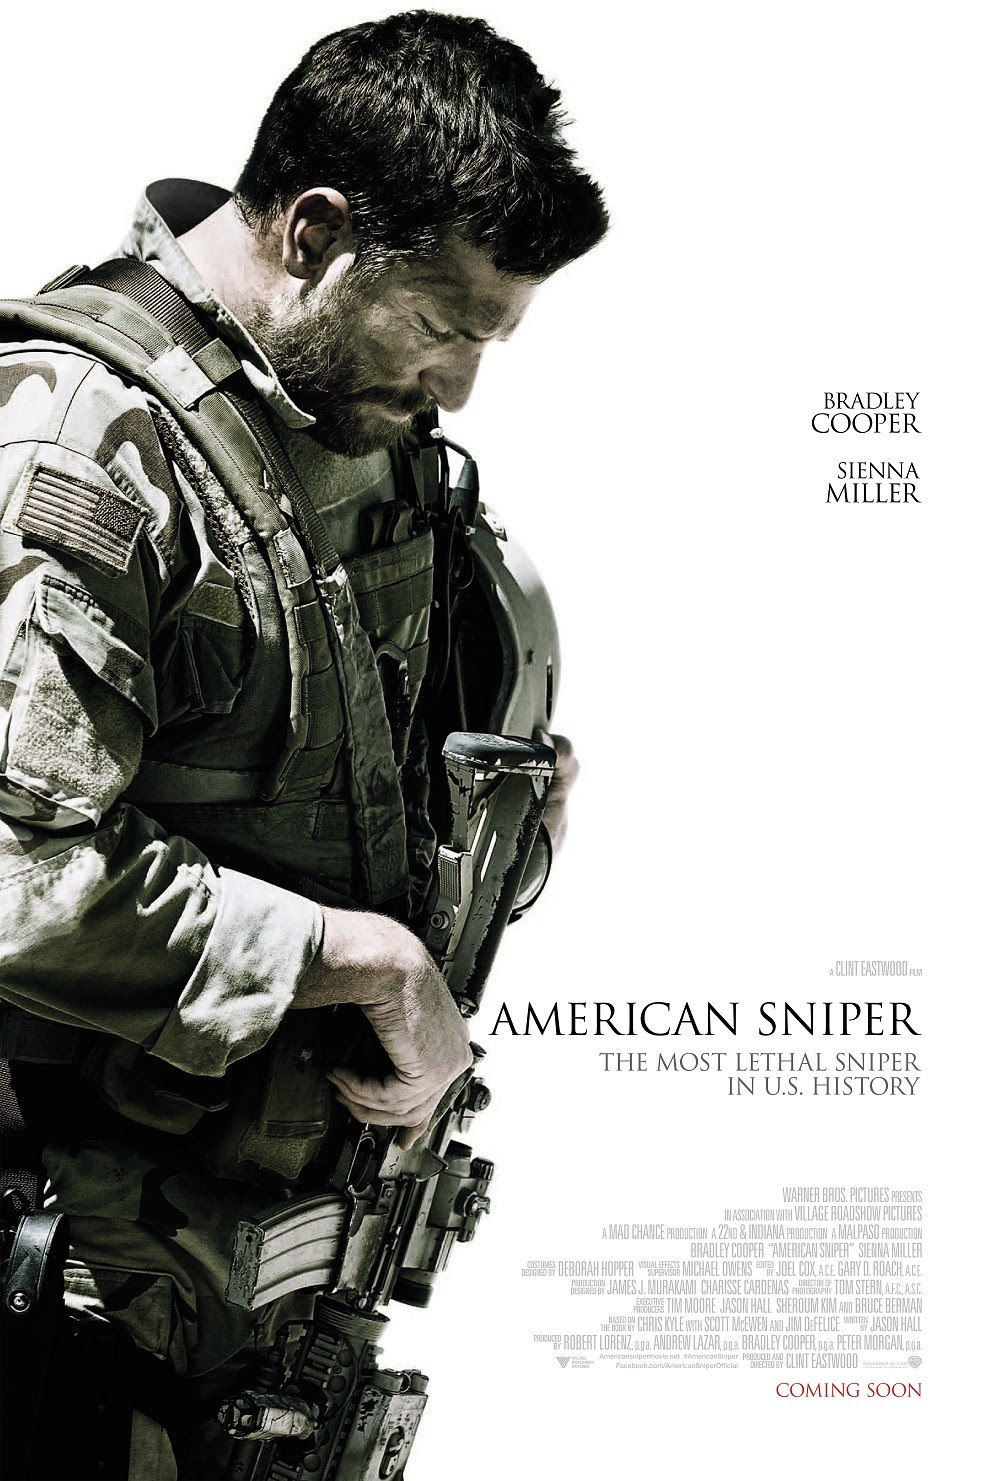 Extra Large Movie Poster Image for American Sniper